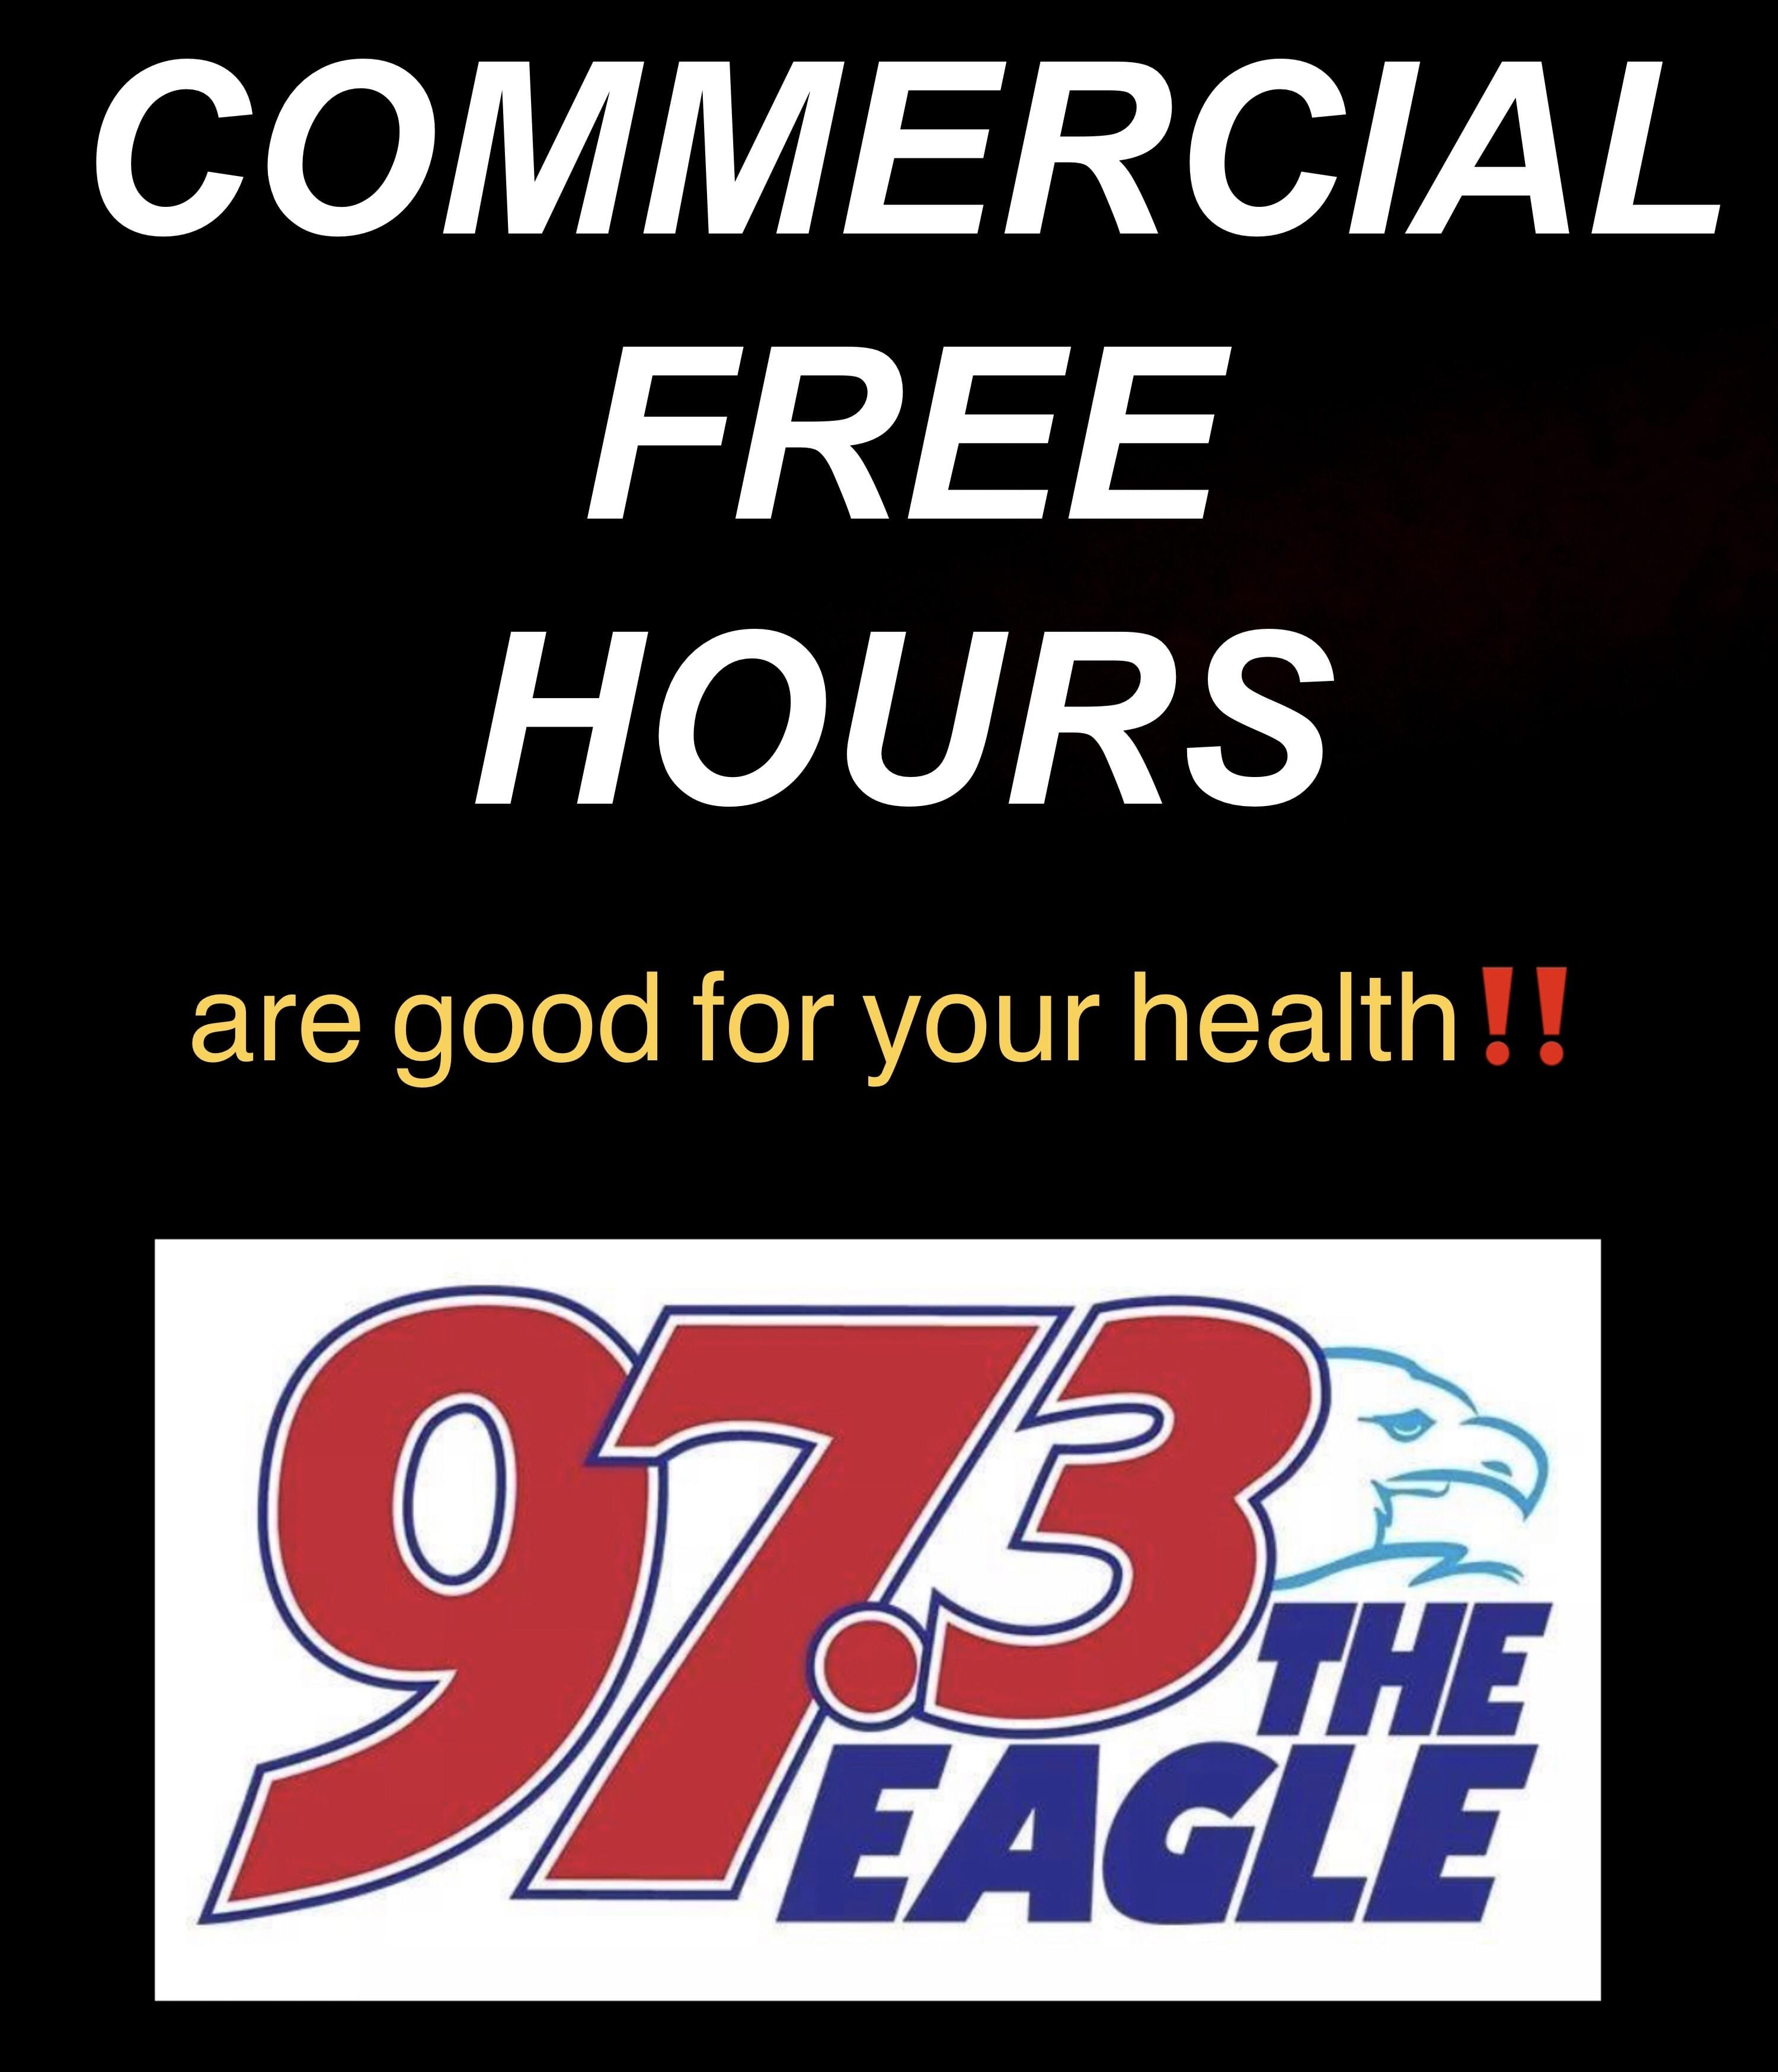 Commercial Free Hours Good For You